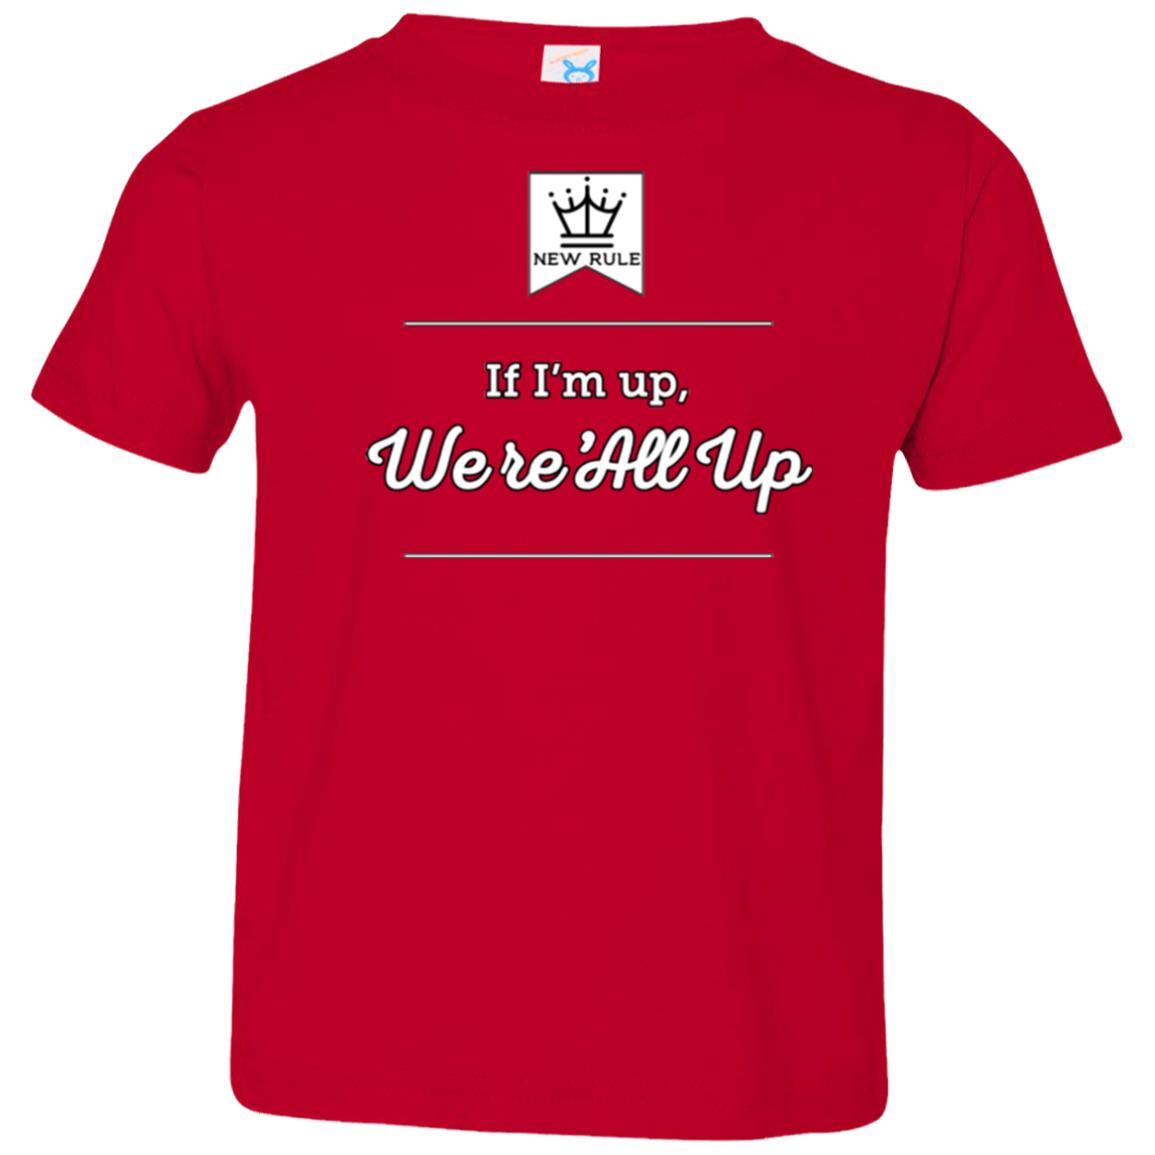 If I'm Up - Premium Toddler T-Shirt